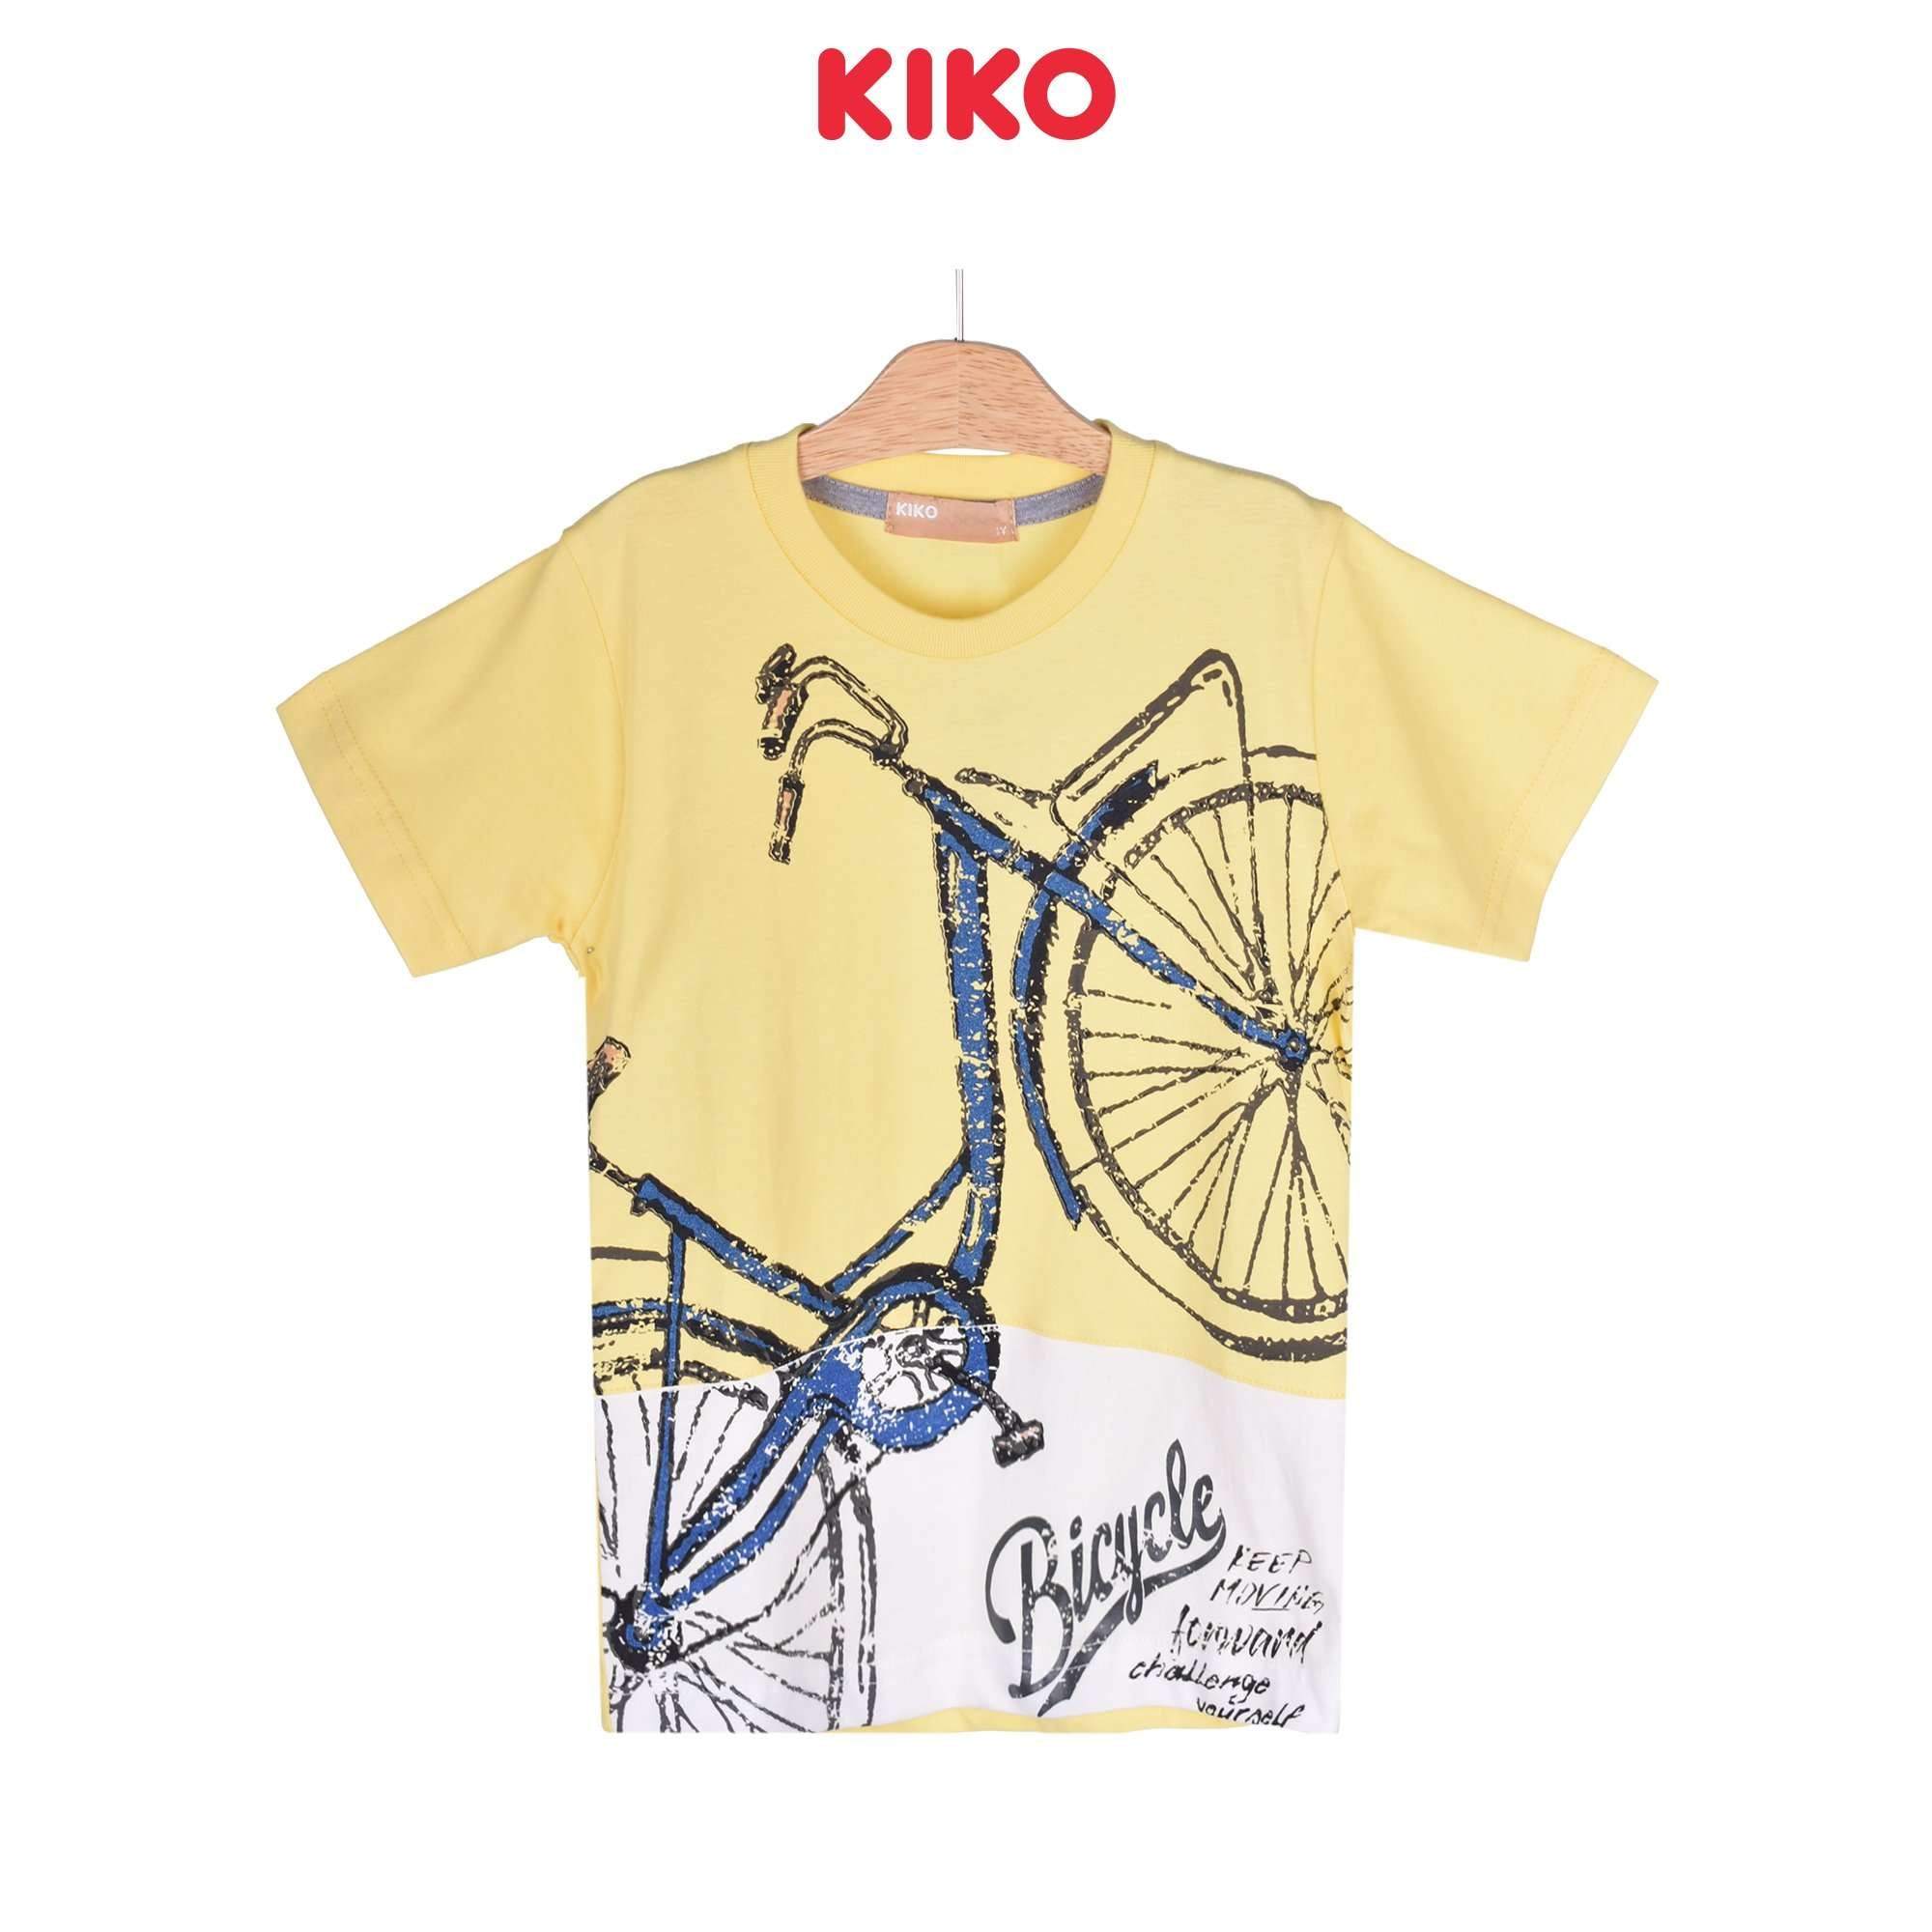 KIKO Boy Short Sleeve Tee 130088-112 : Buy KIKO online at CMG.MY